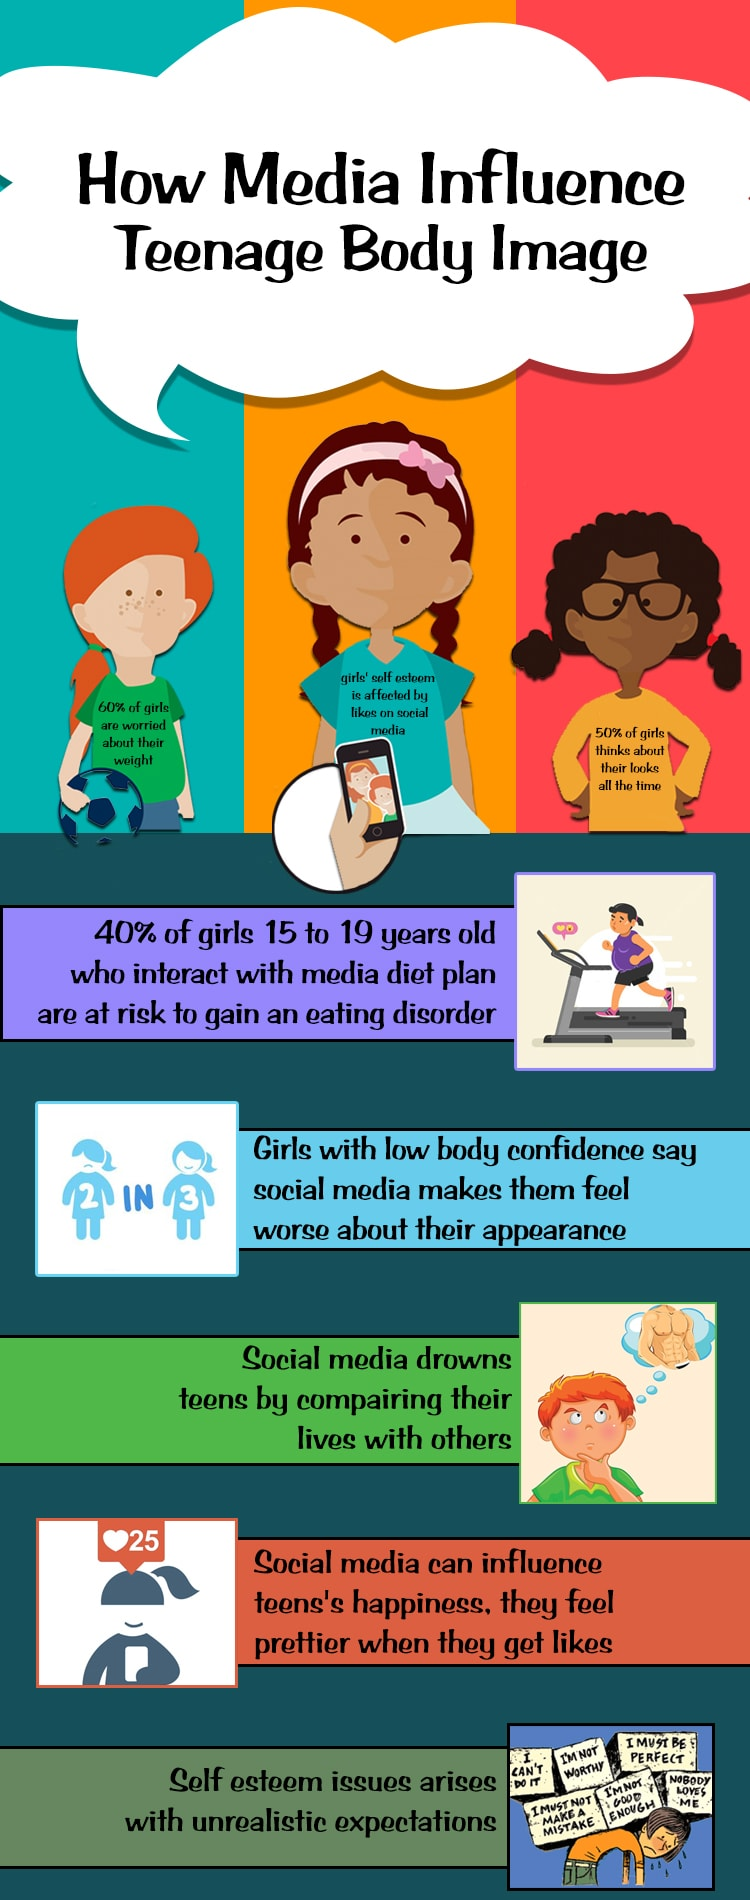 Impact Of Social Media On Teenagers Body Image